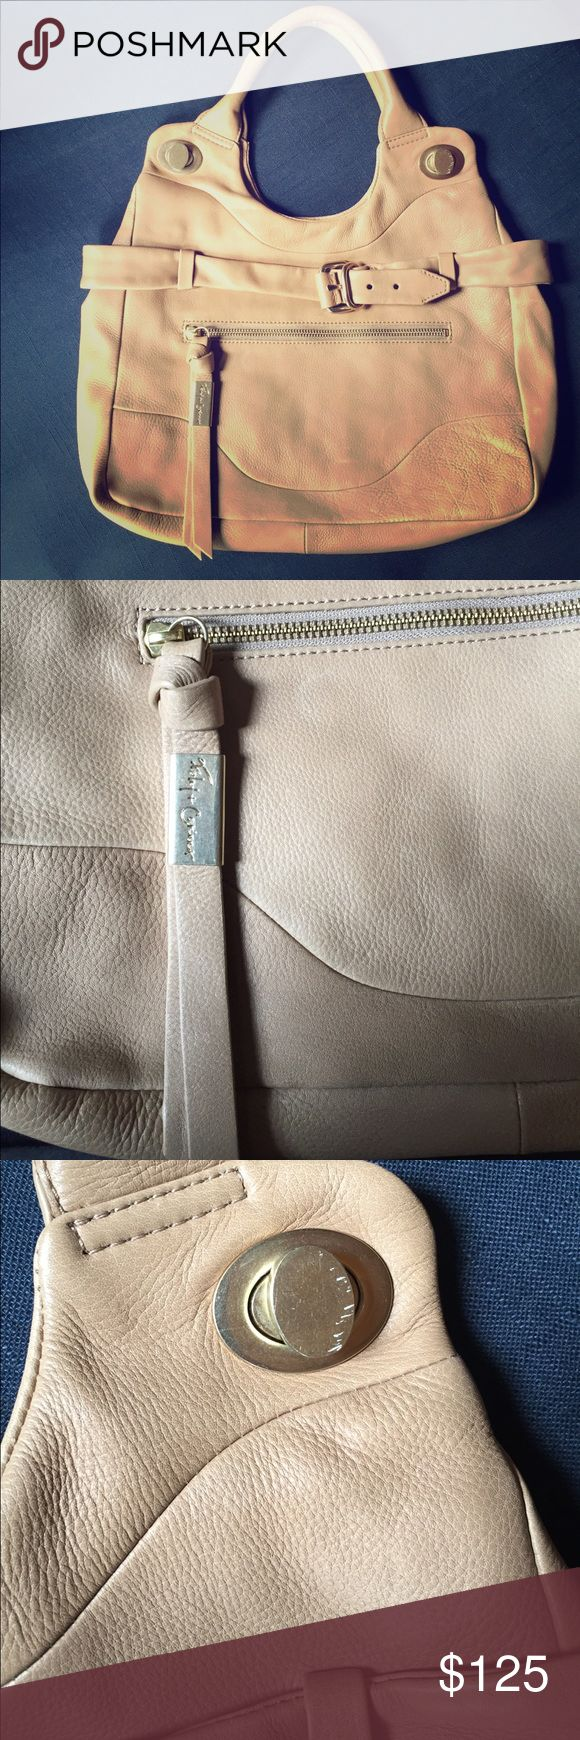 Foley + Corinna Tote Jet Set Tote is a tan / beige color and ingreat condition minus a few small scratches on the handle (as shown in pictures). Foley + Corinna Bags Totes